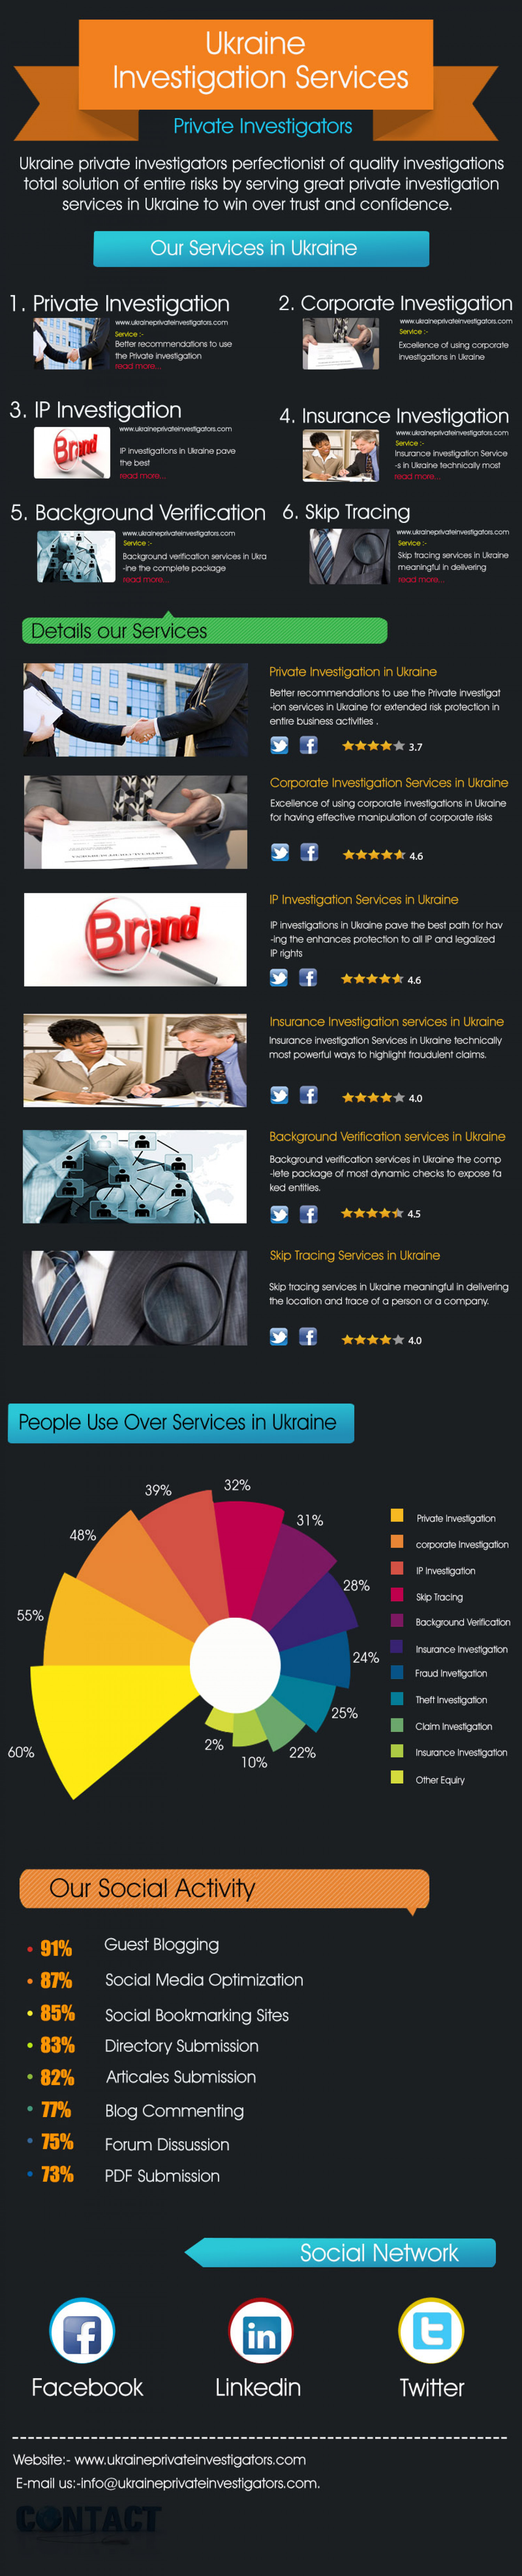 Essential facts about Private investigation services Infographic